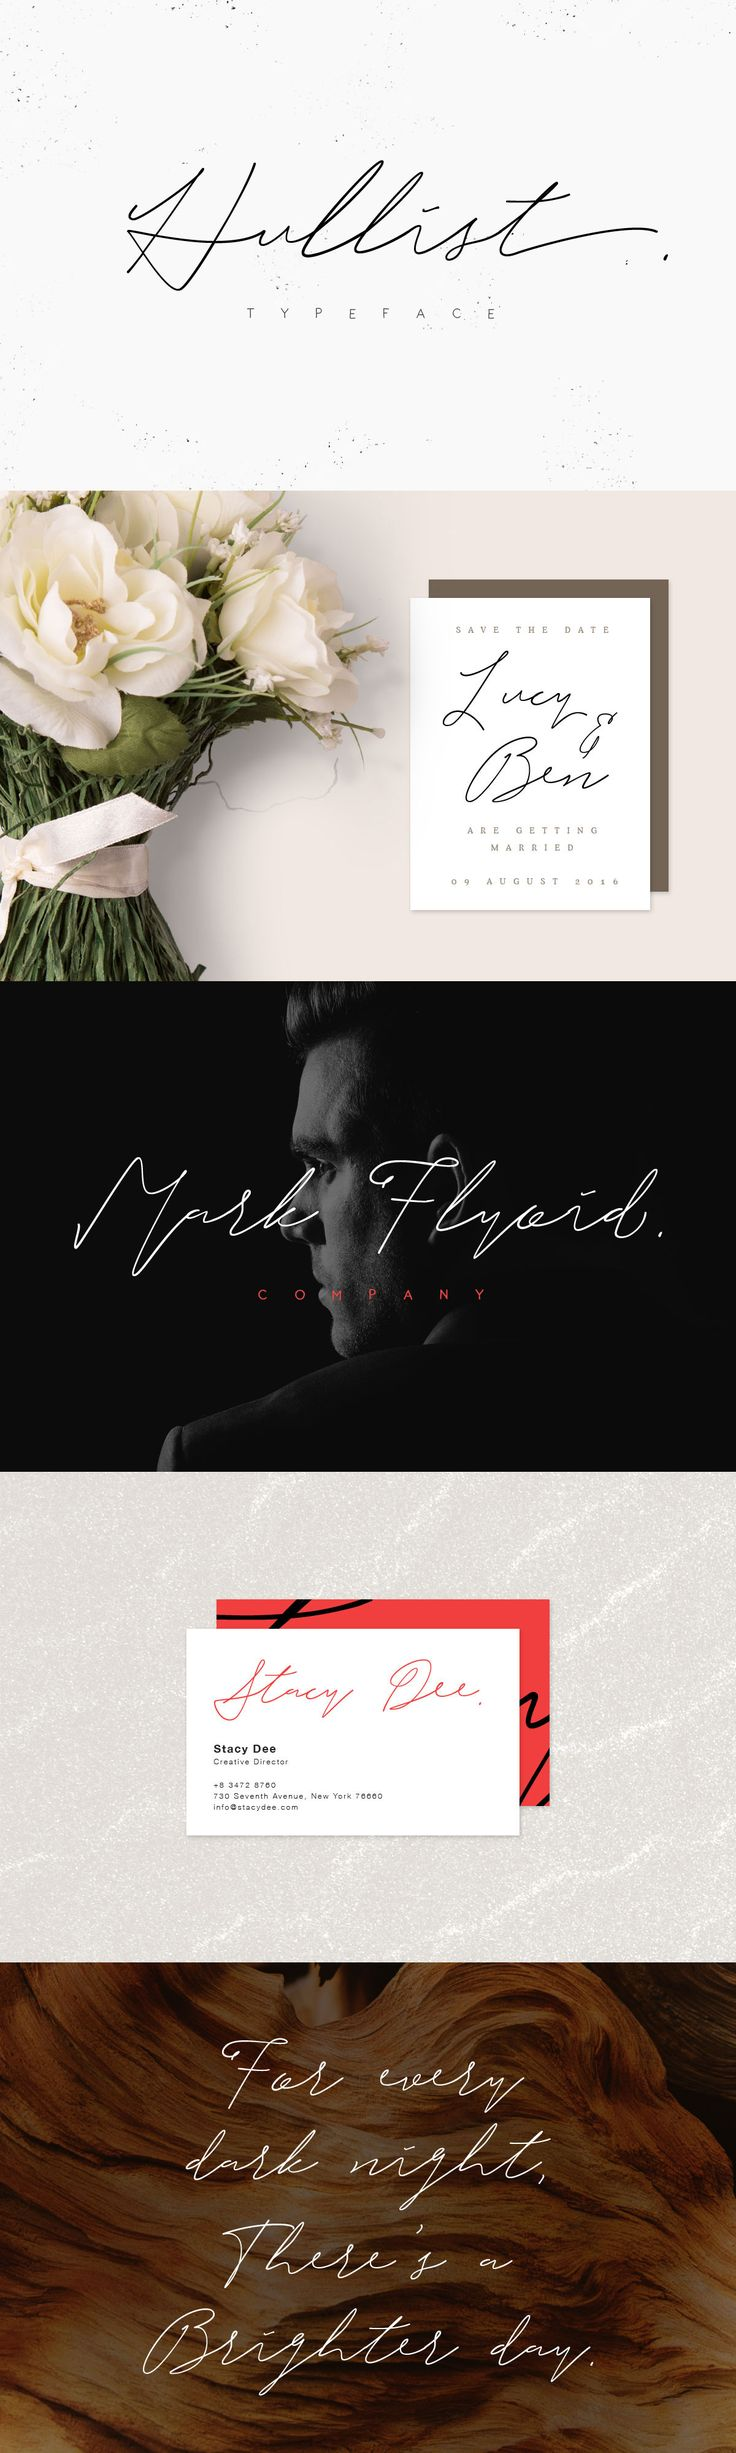 Hullist is classic handwritten font, every single letters have been carefully crafted to make your text looks beautiful. With modern script style this font will perfect for many different project ex: quotes, blog header, poster, wedding, branding, logo, fashion, apparel, letter, invitation, stationery, etc.